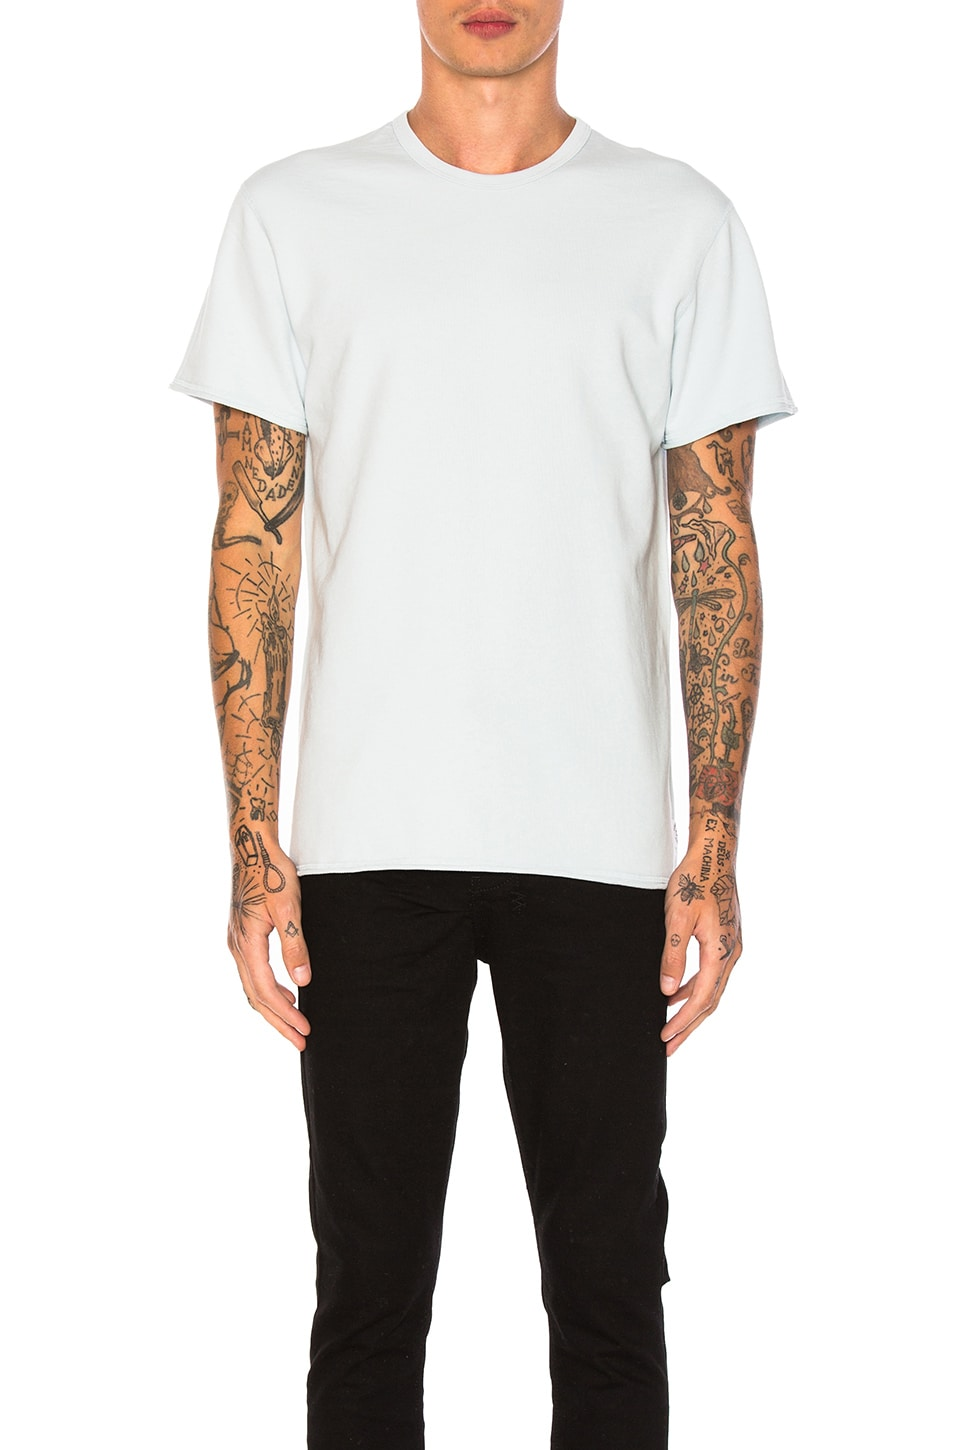 Tee by Pierre Balmain